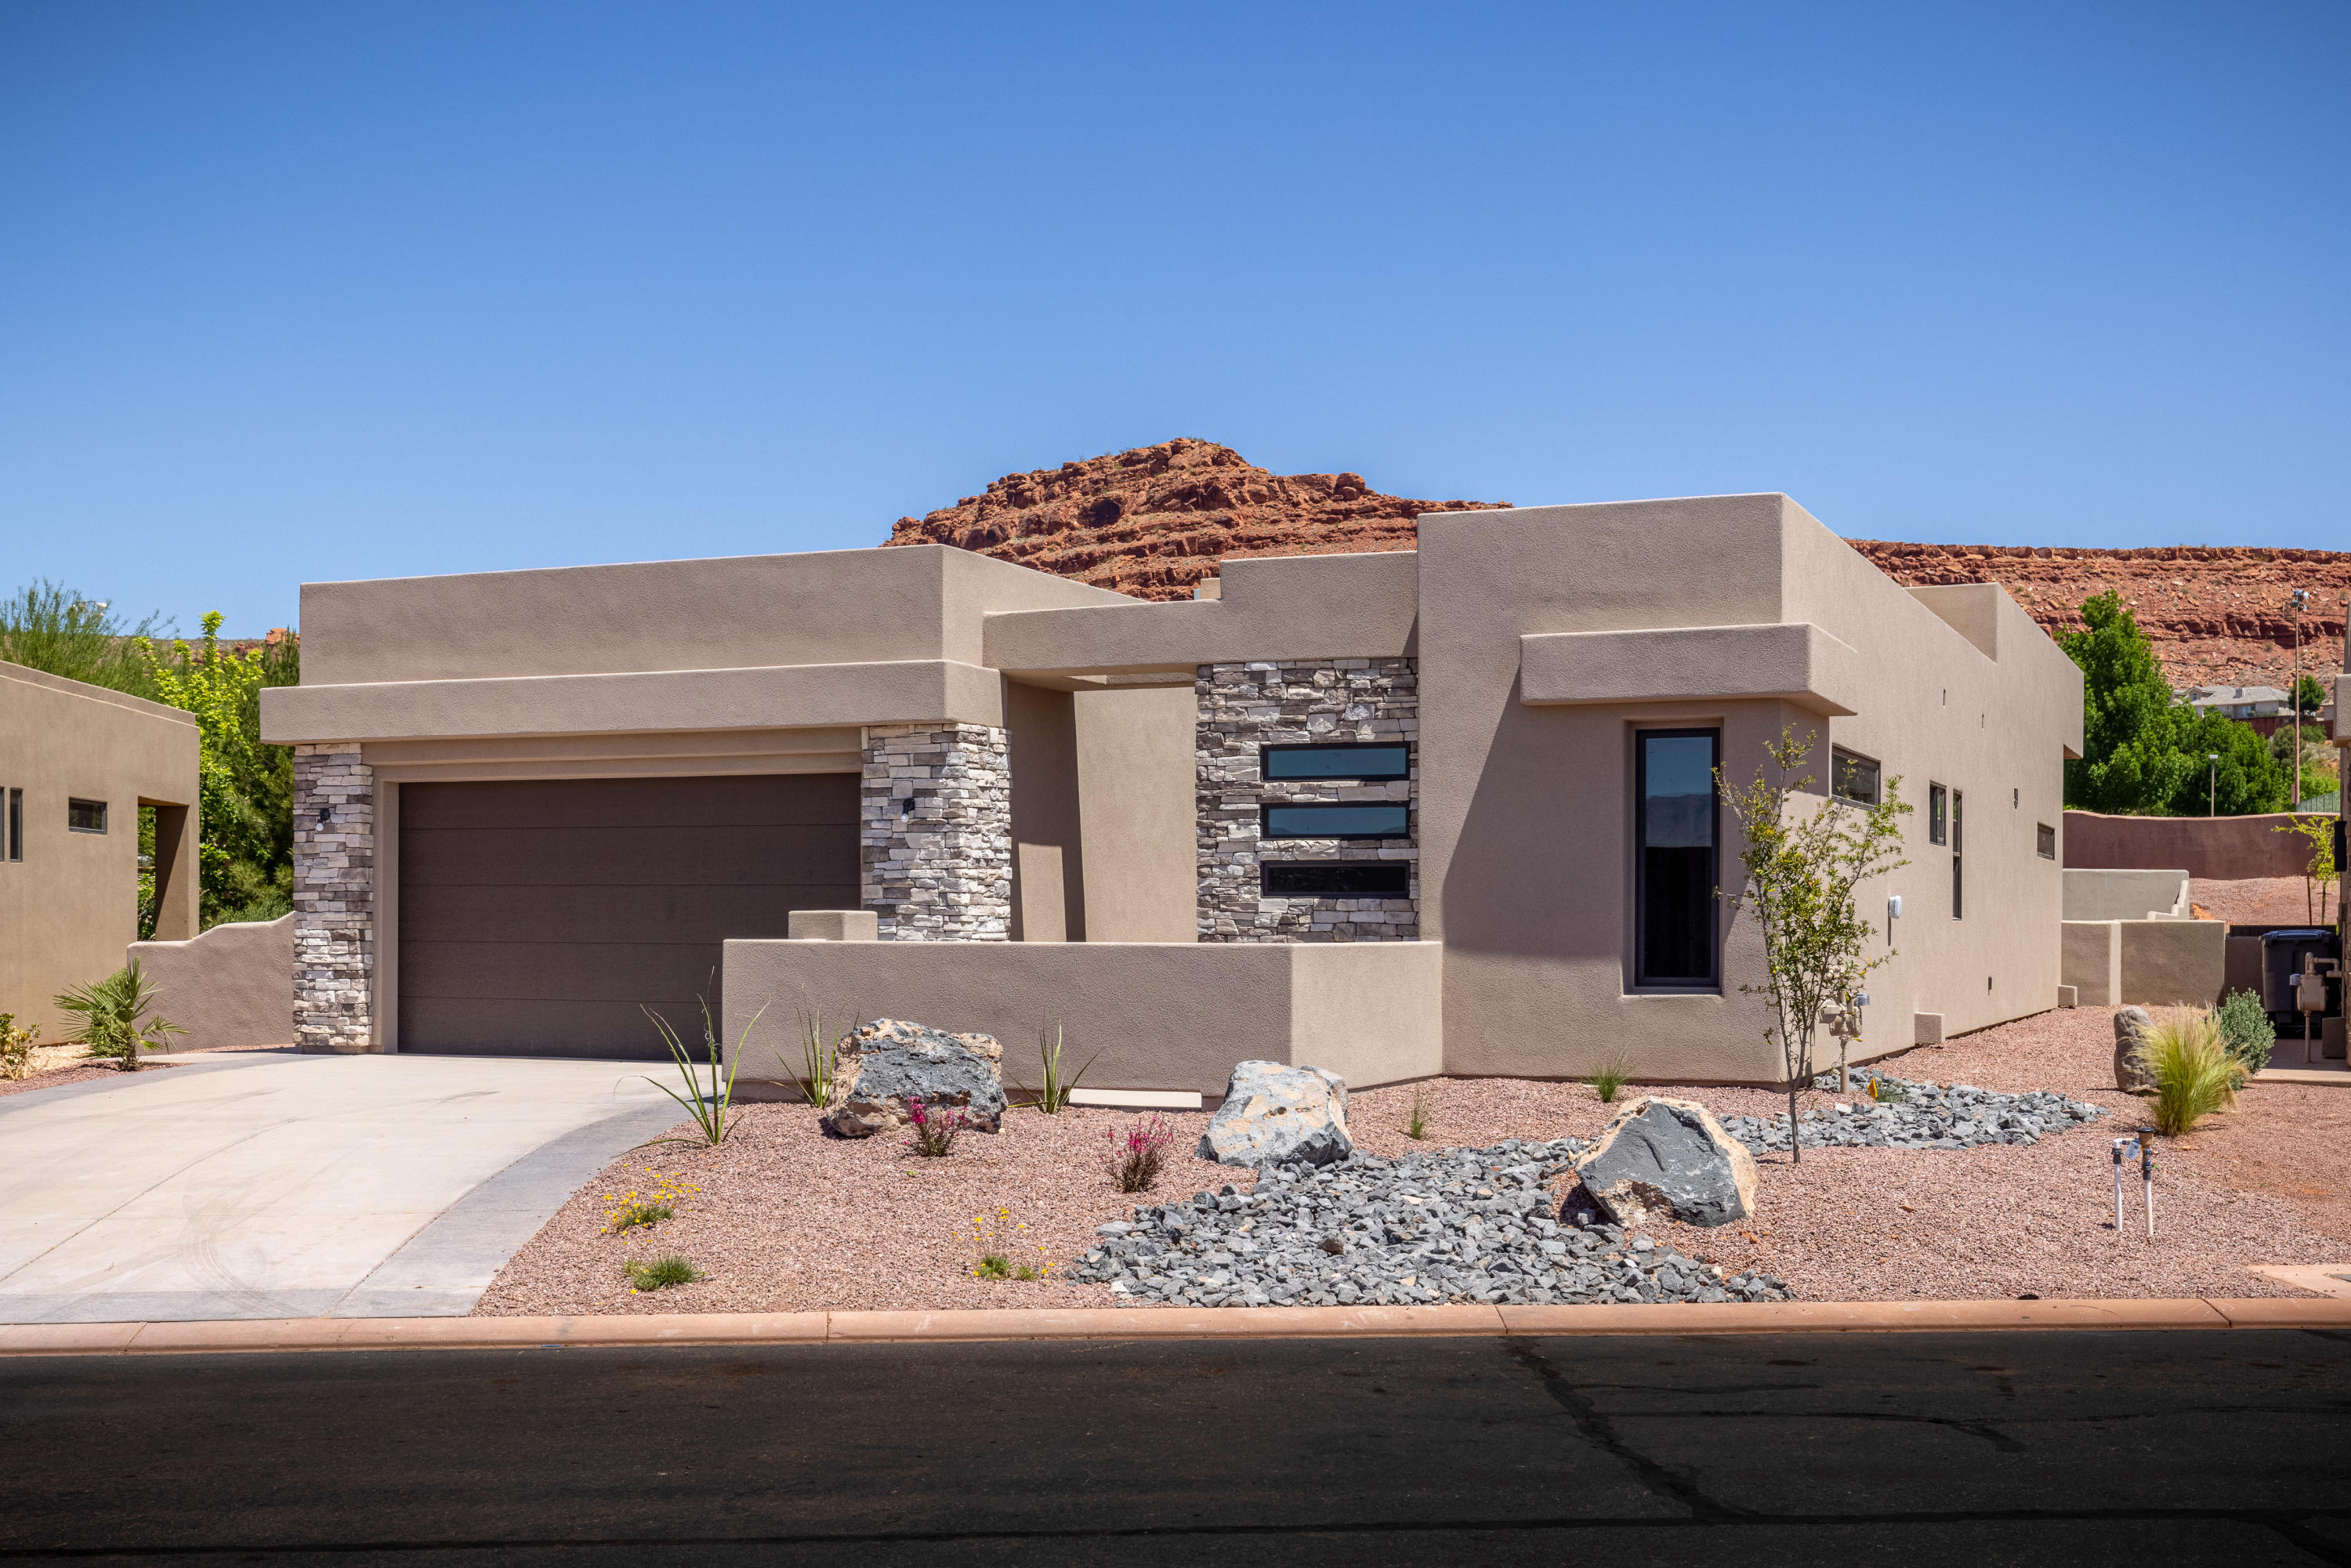 2090 N Tuweap Unit 33, St George Ut 84770